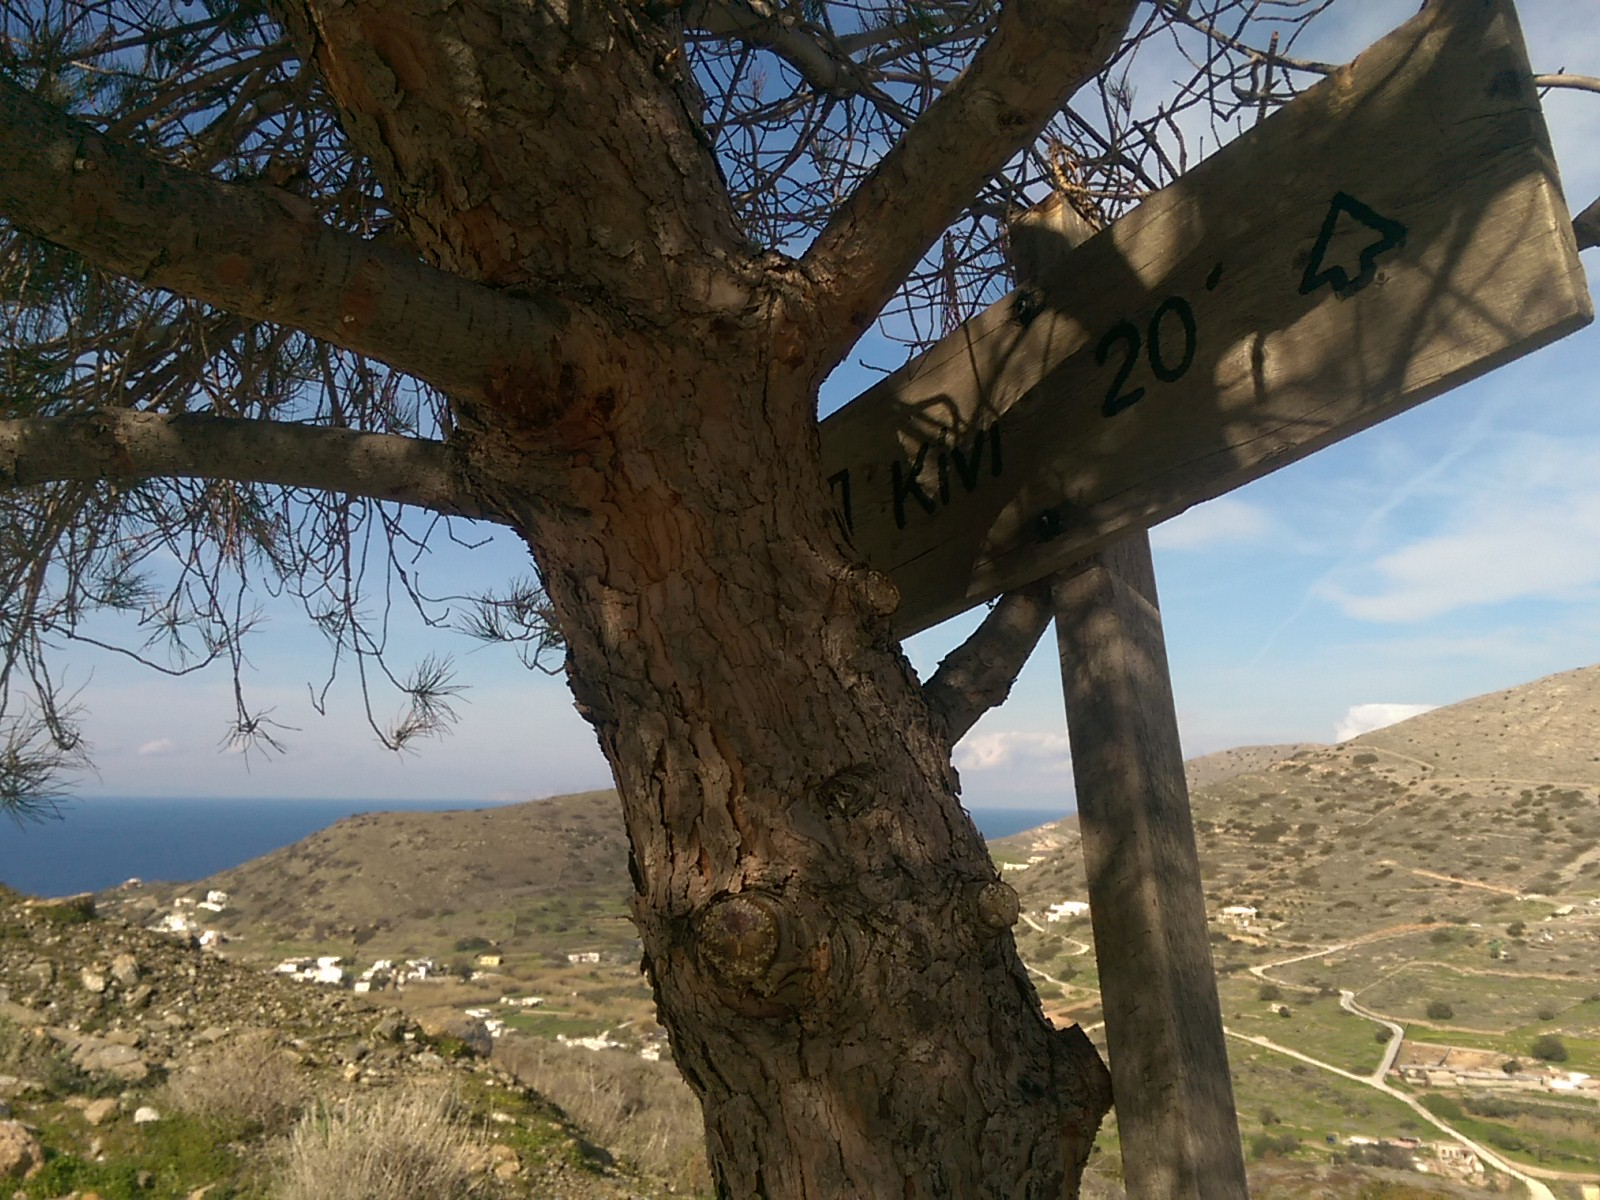 A tree and a wooden sign with an arrow that says Kini 20' in Greek with green hills and sea in the background